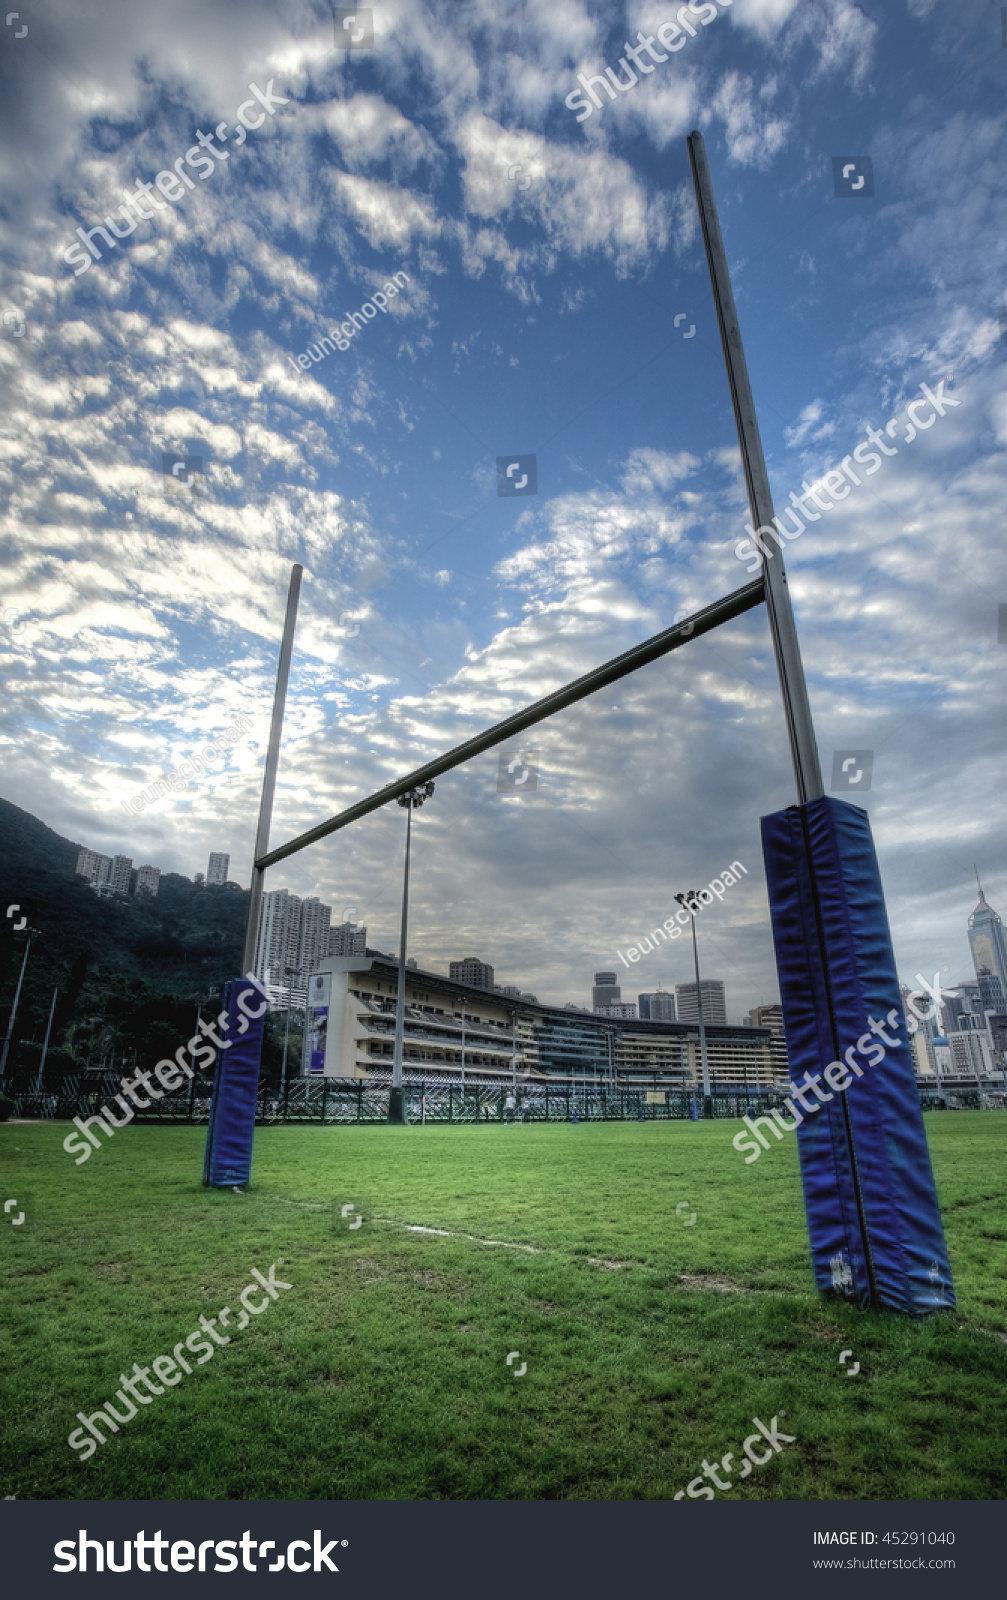 how to make rugby goal posts